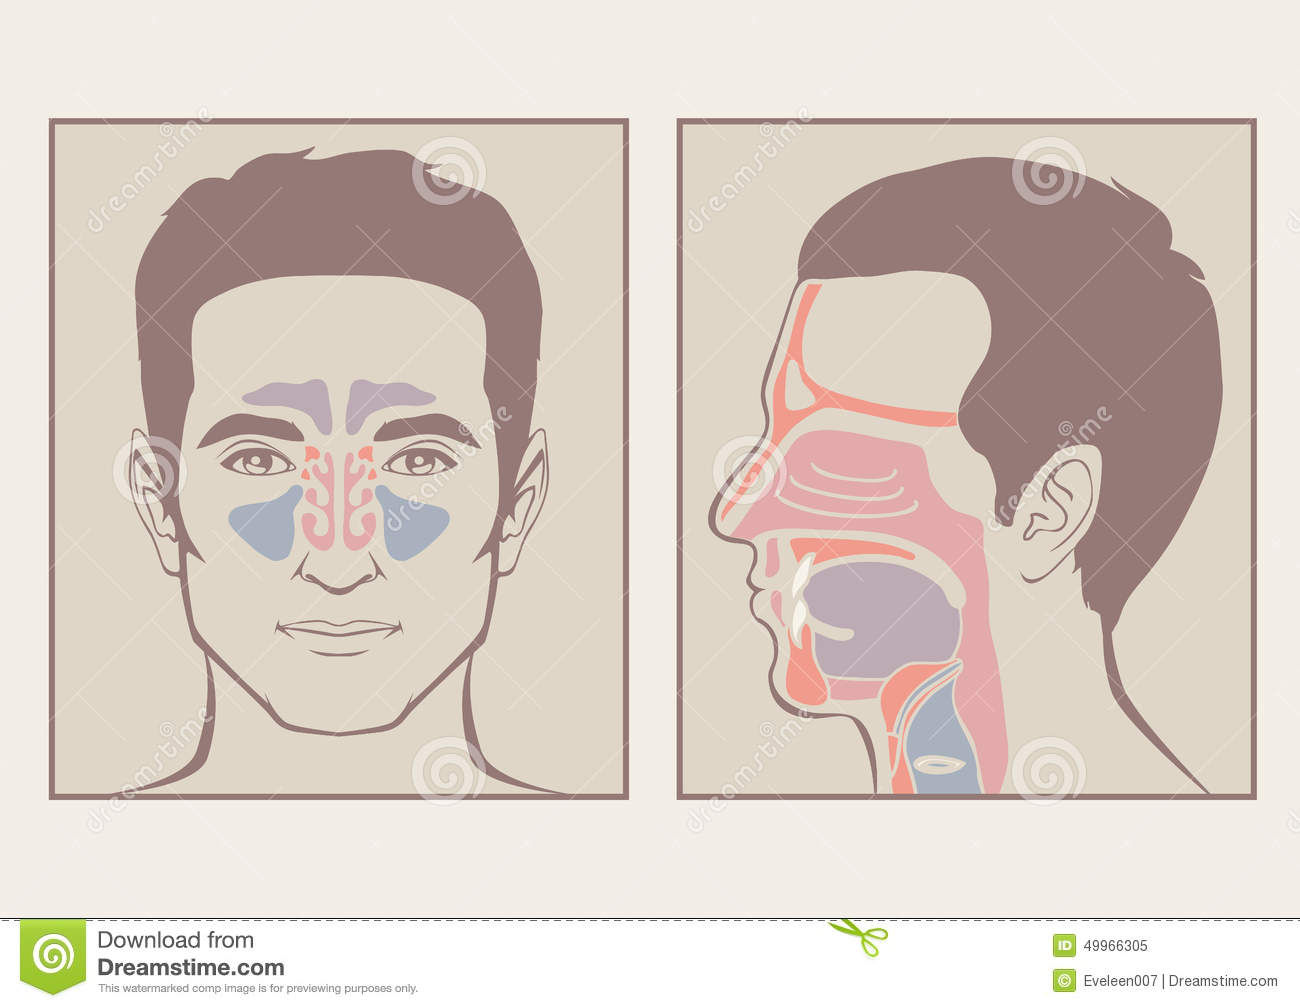 Nose, throat anatomy stock vector. Illustration of breathing - 49966305